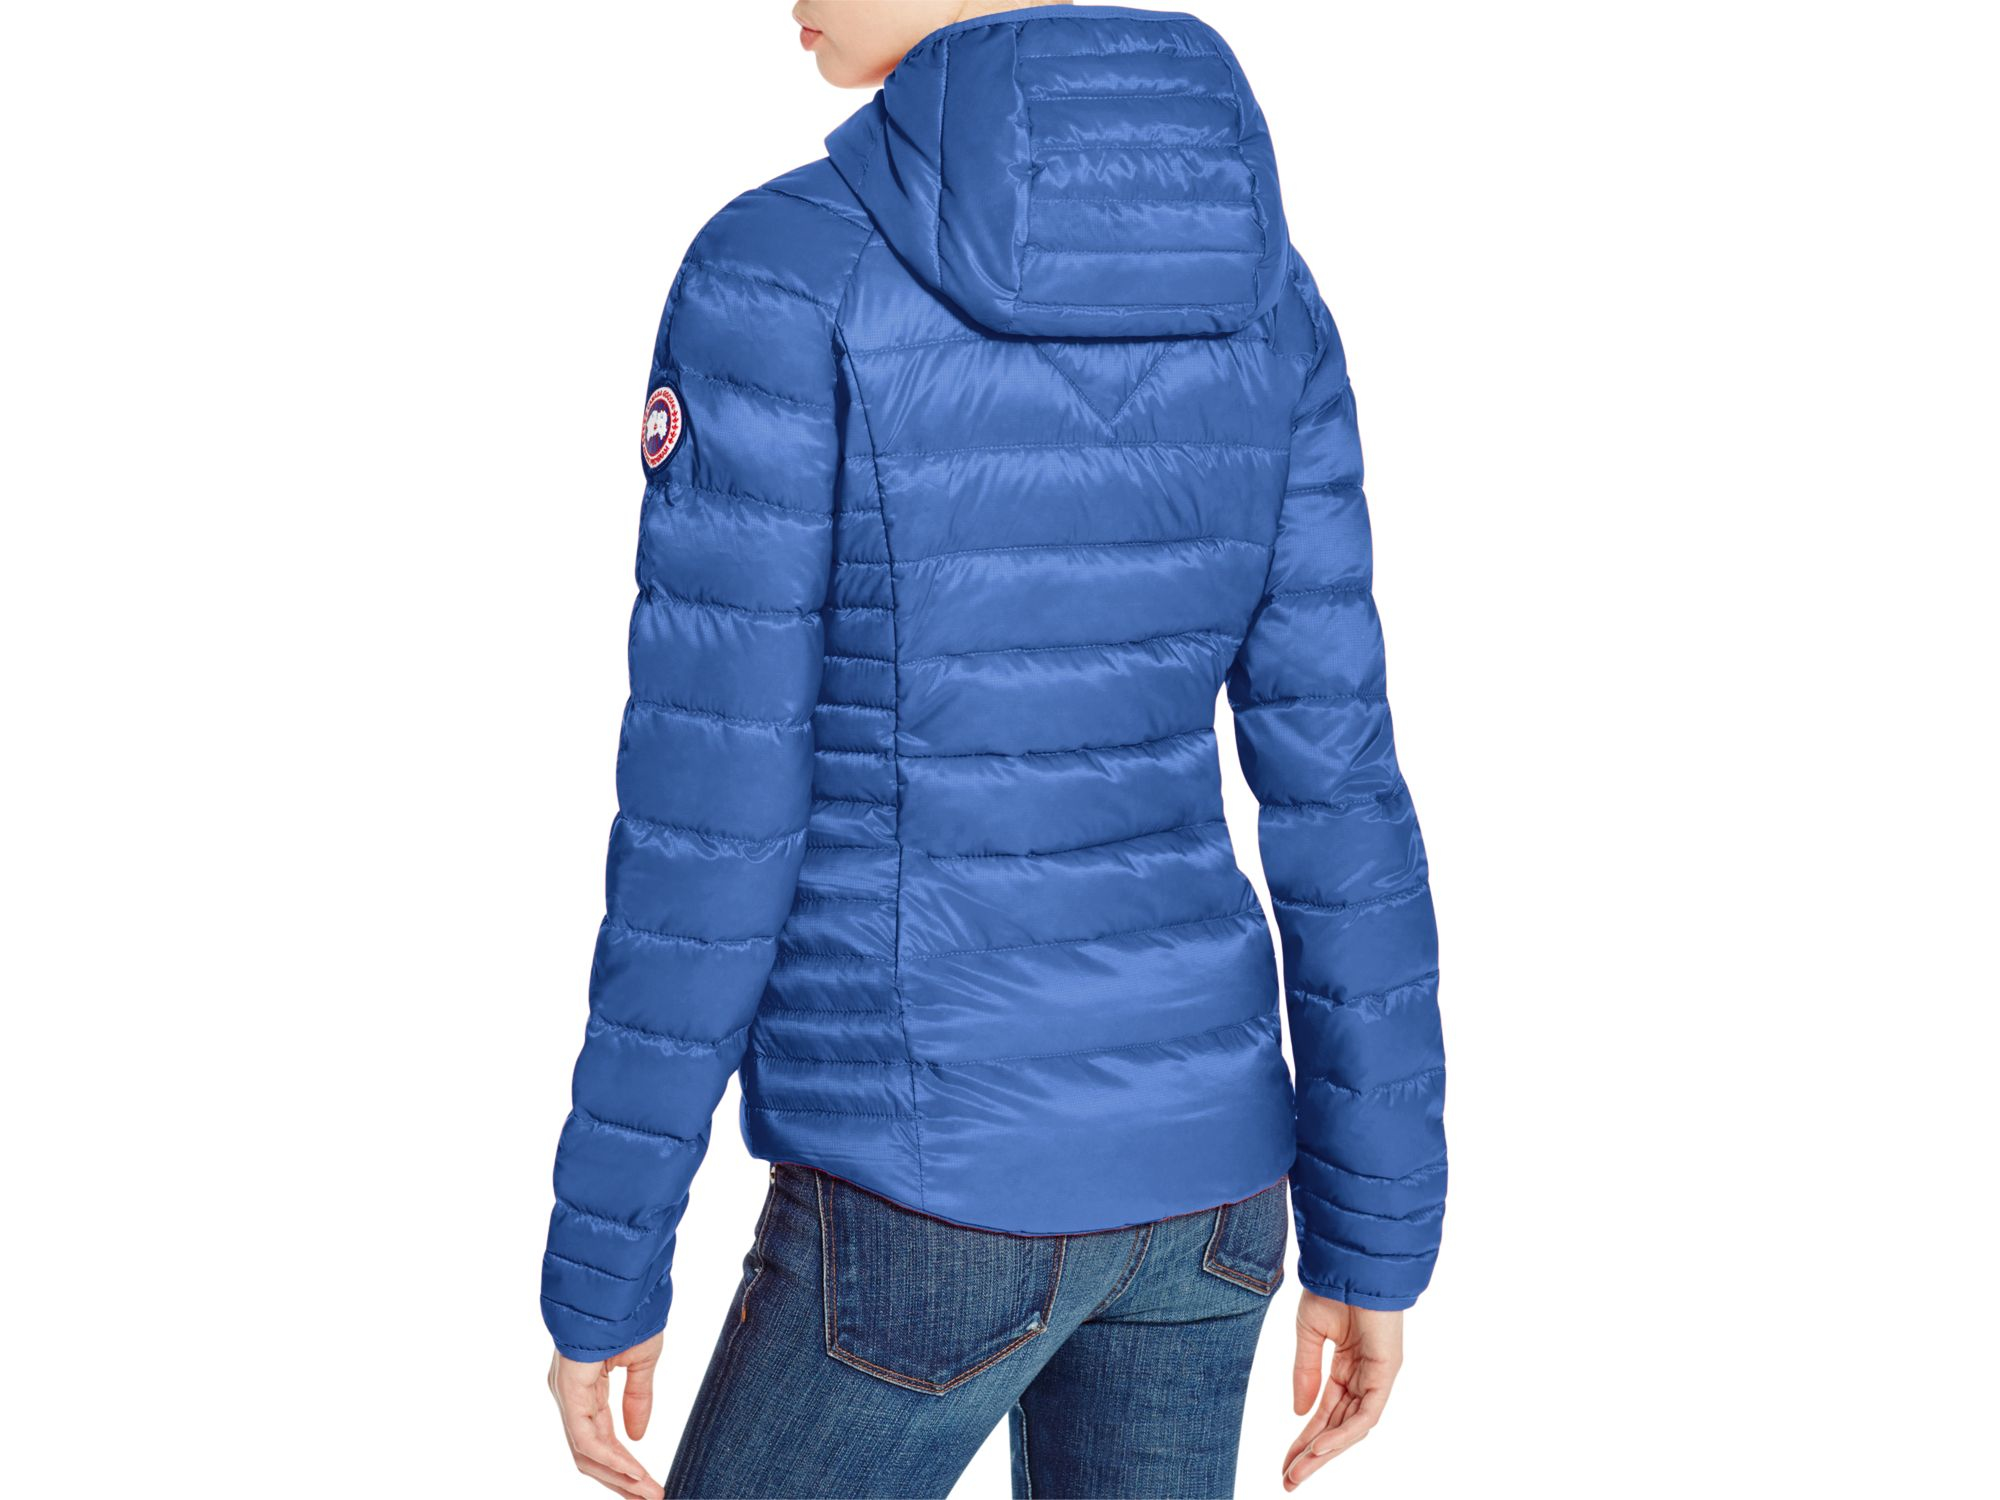 Canada Goose coats replica fake - Canada goose Brookvale Hooded Puffer Jacket in Blue (Royal Blue ...